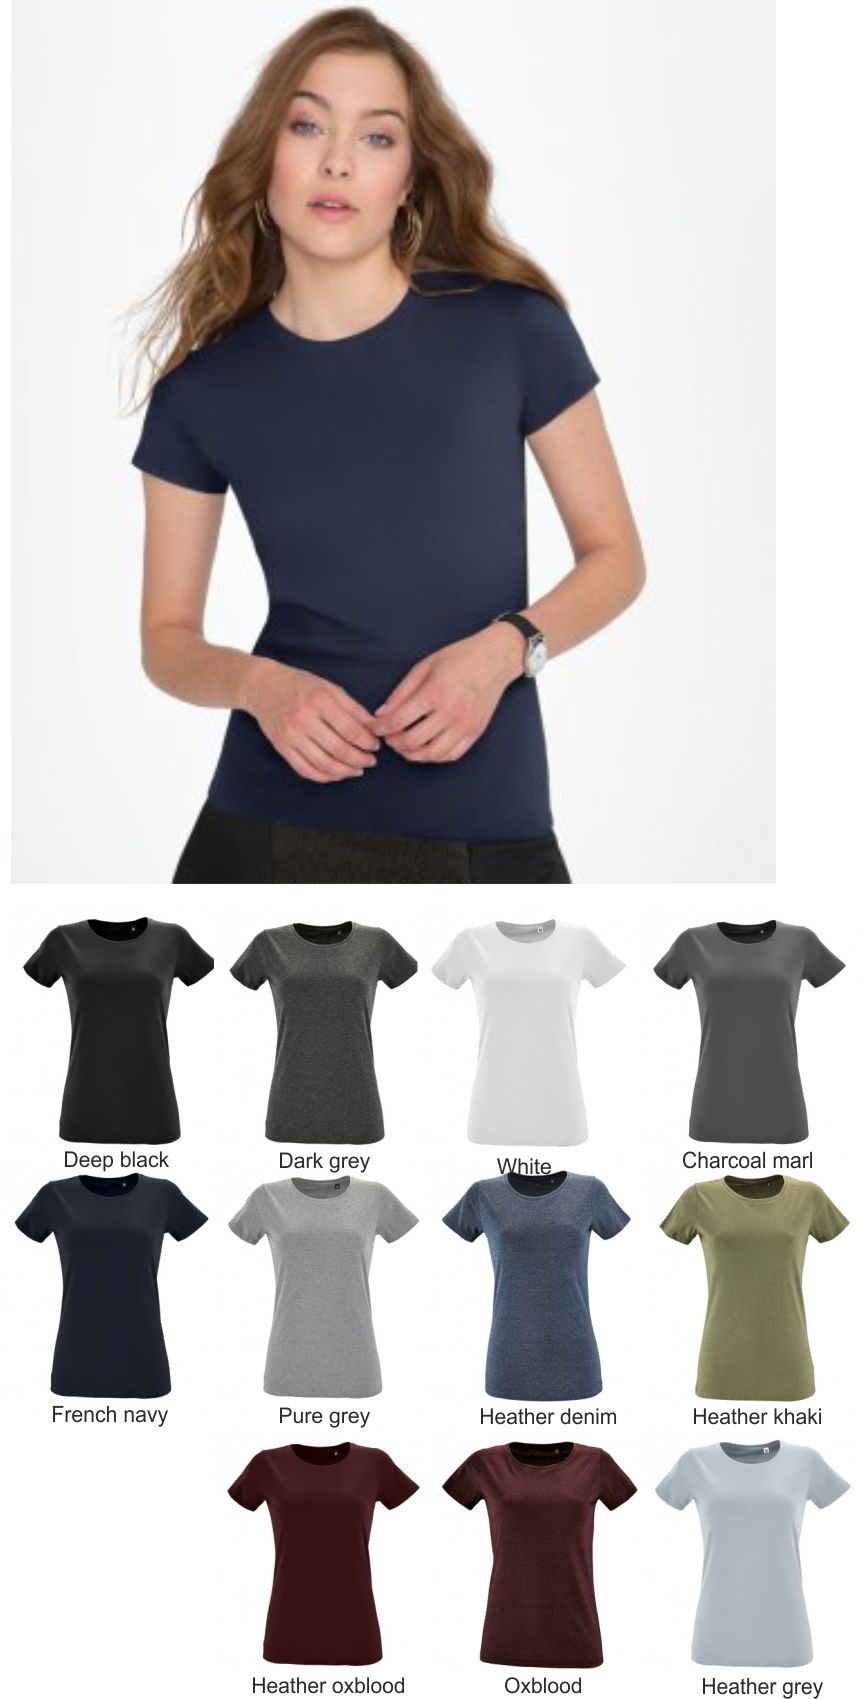 02080 Sol's Ladies Imperial Fit T-shirt